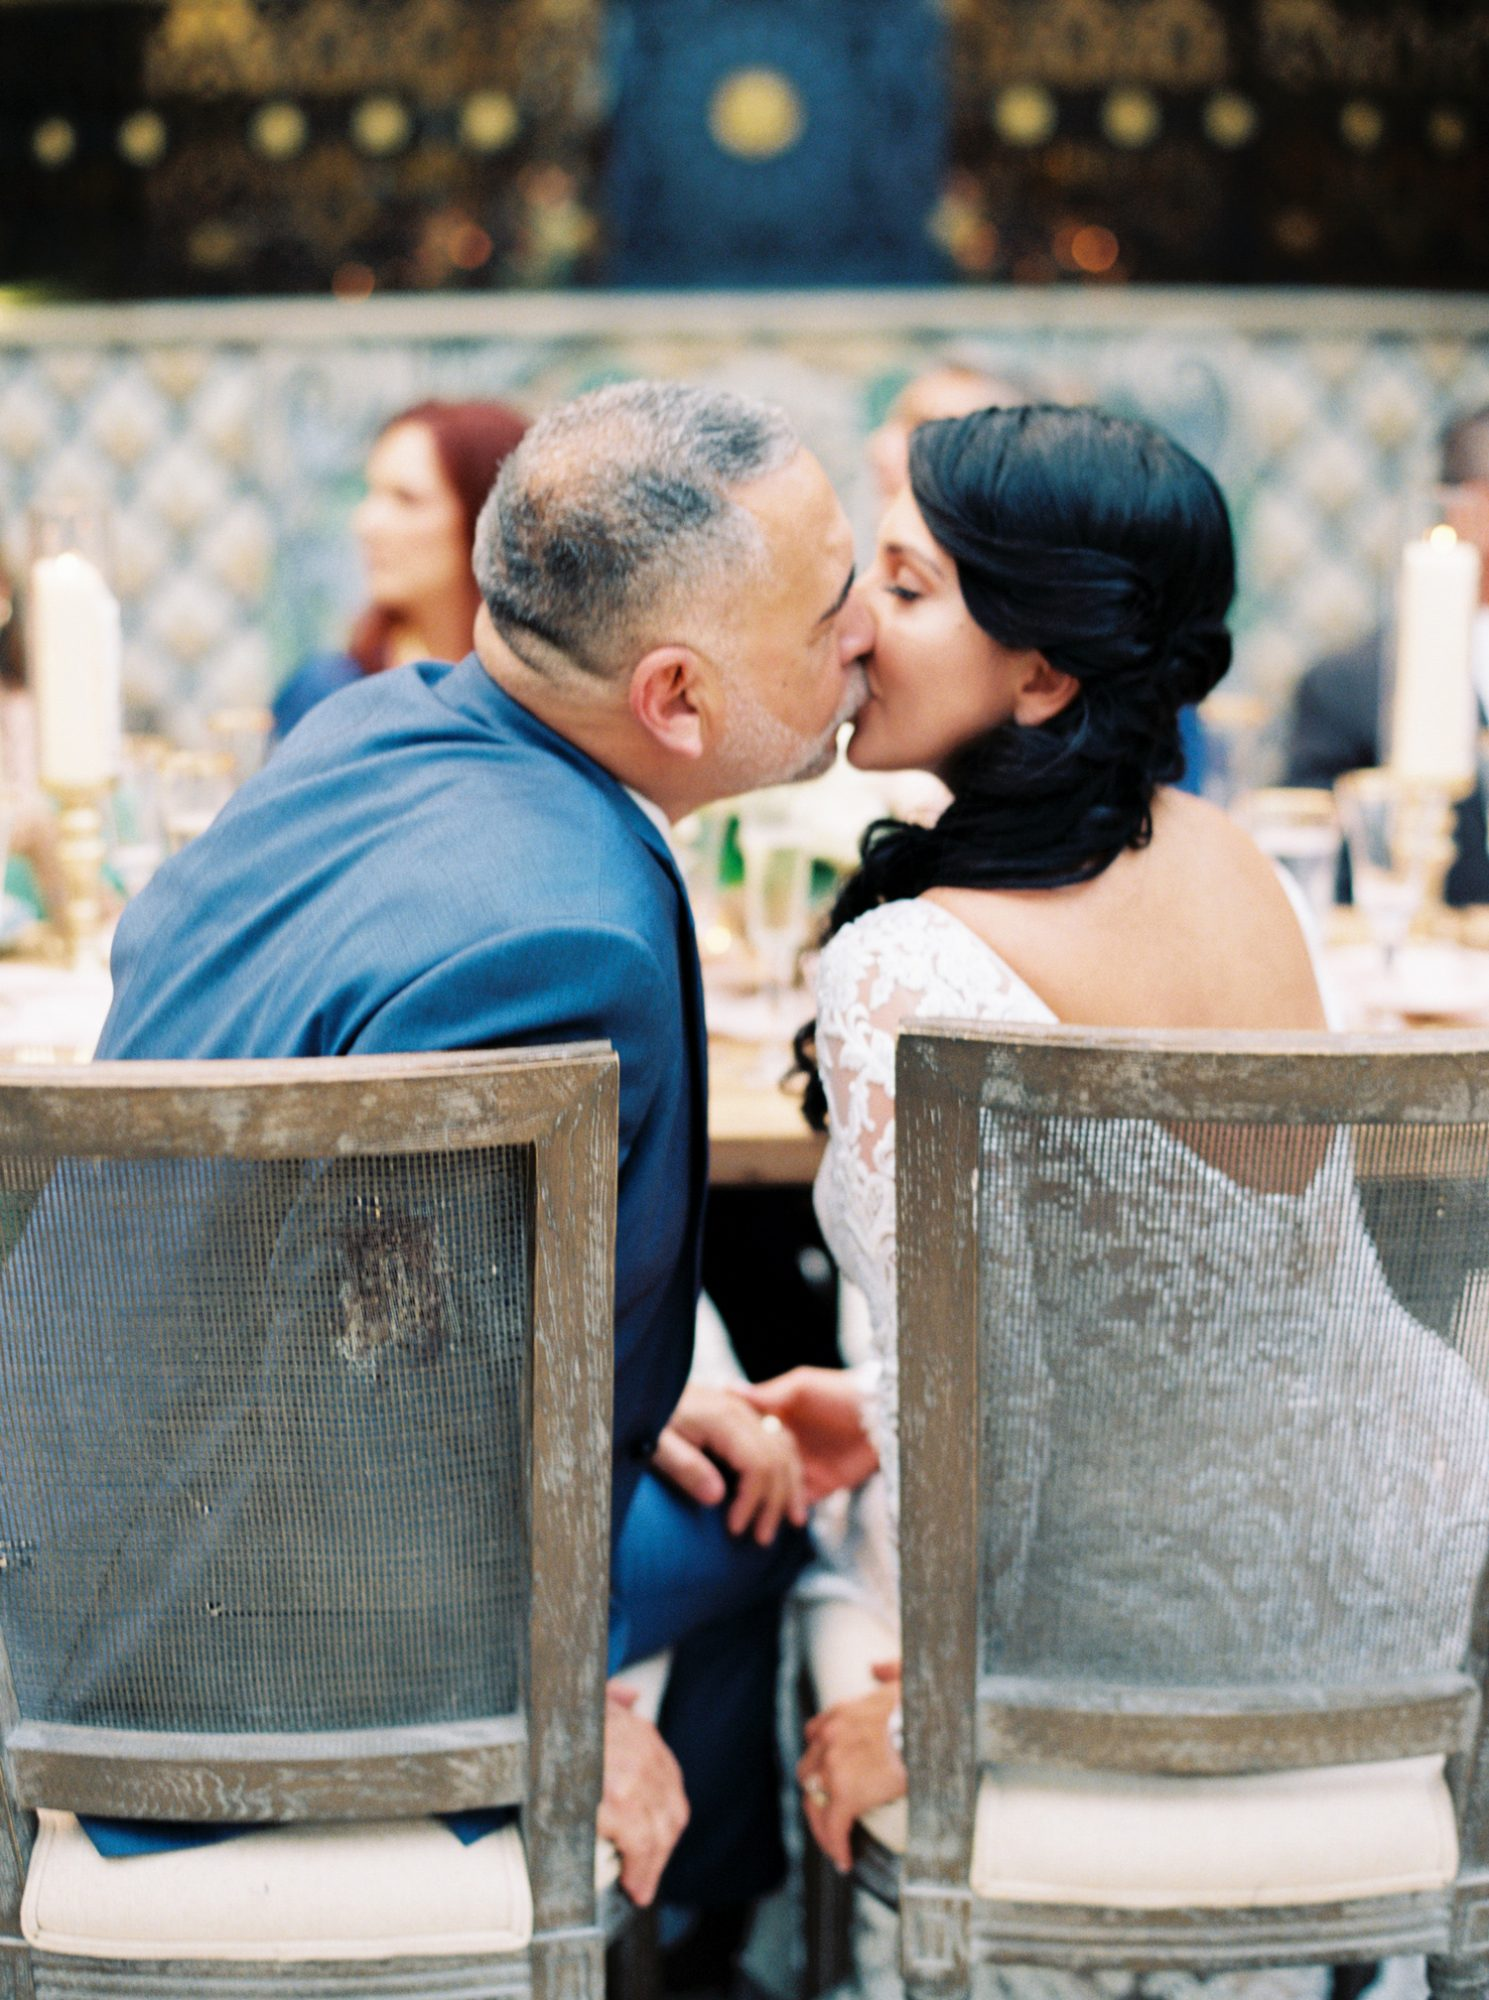 bride and groom kiss at wedding reception table after the wedding